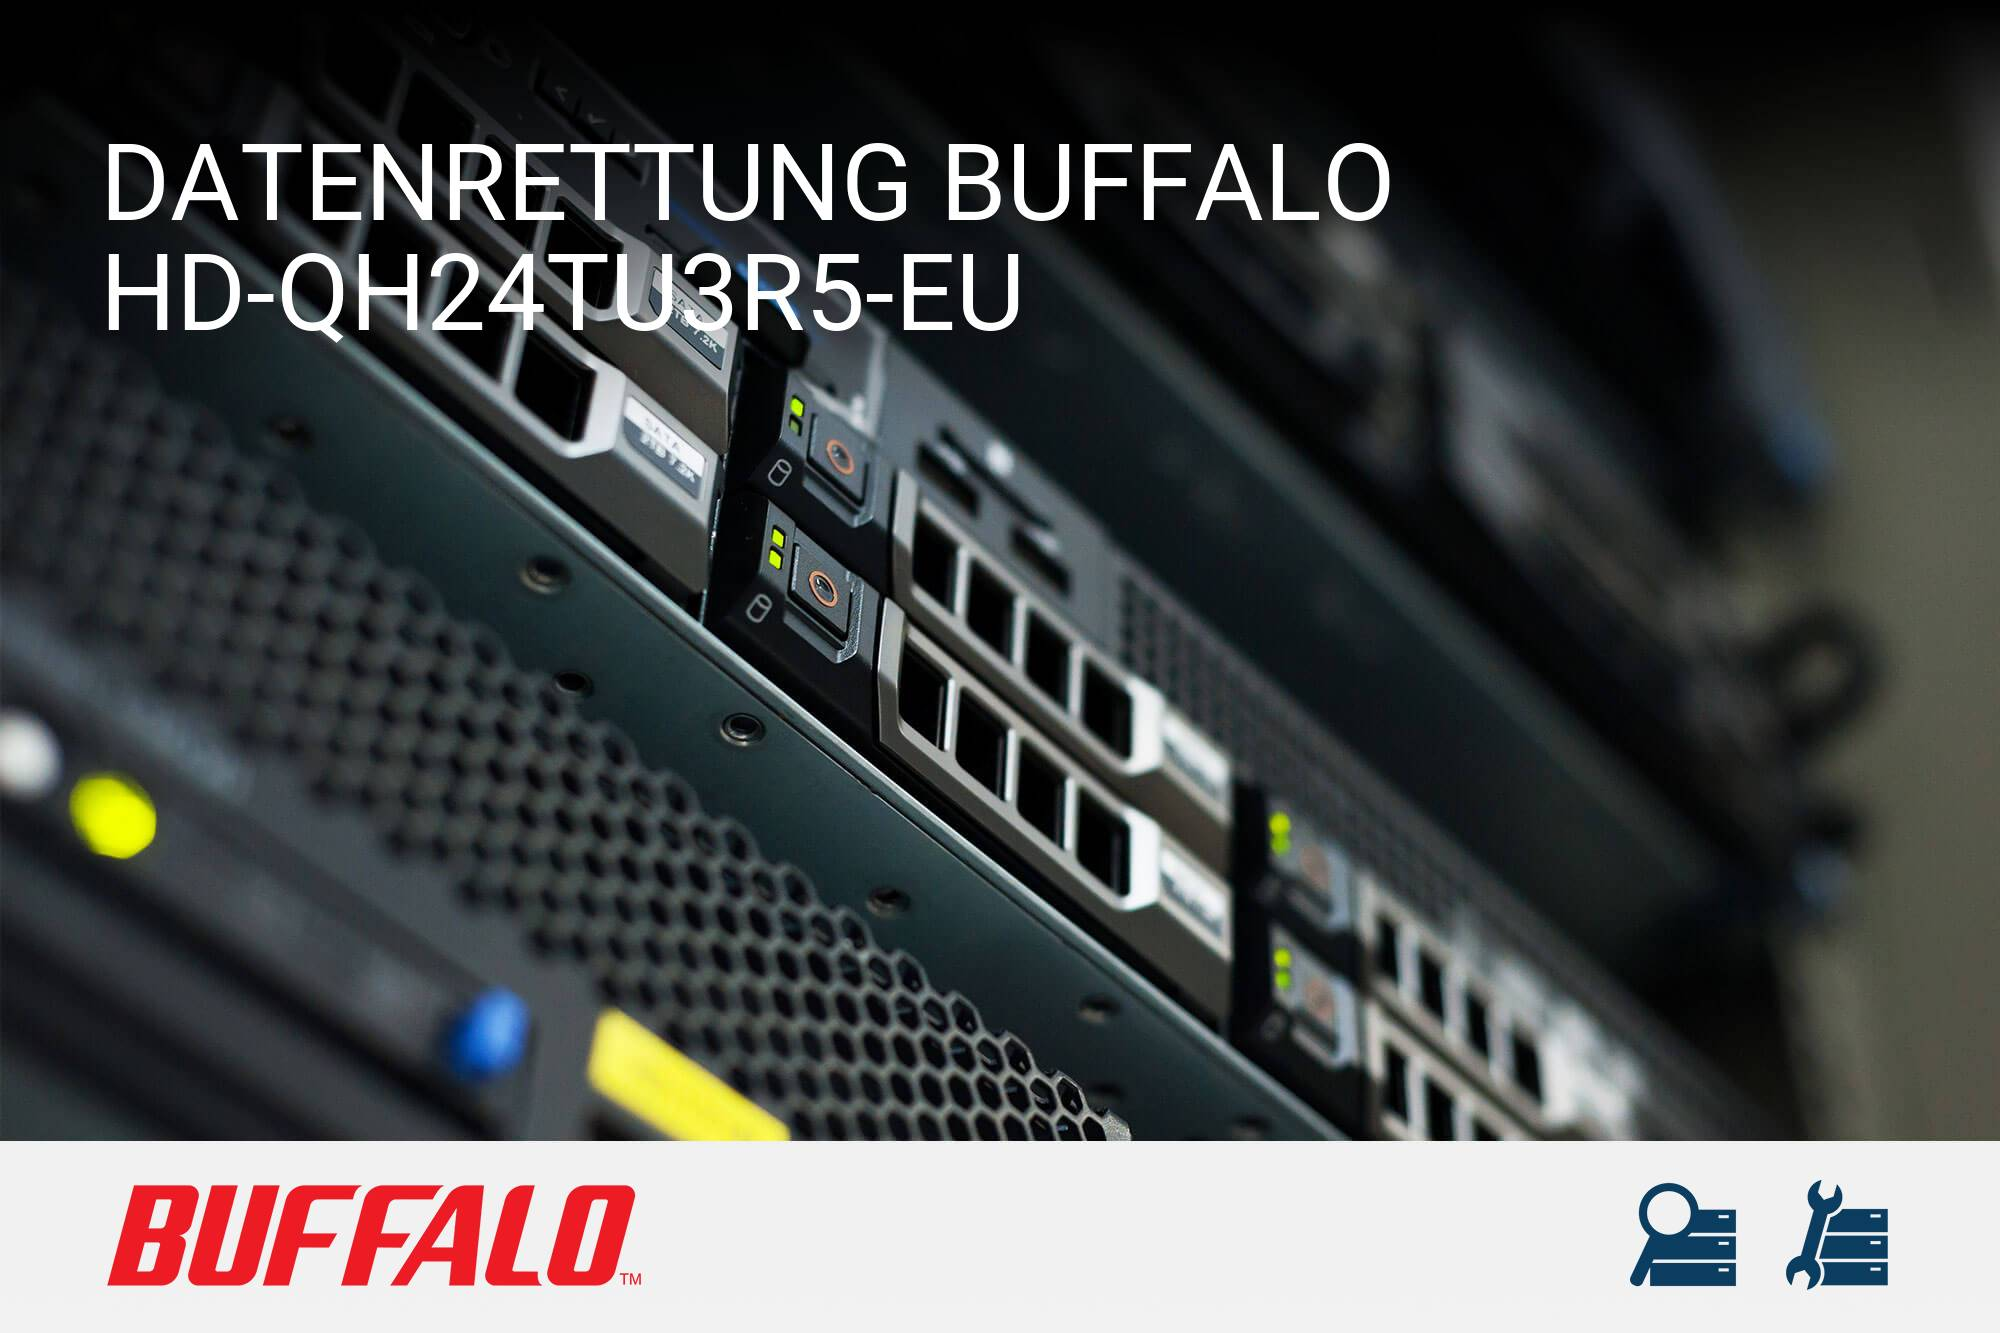 Buffalo HD-QH24TU3R5-EU